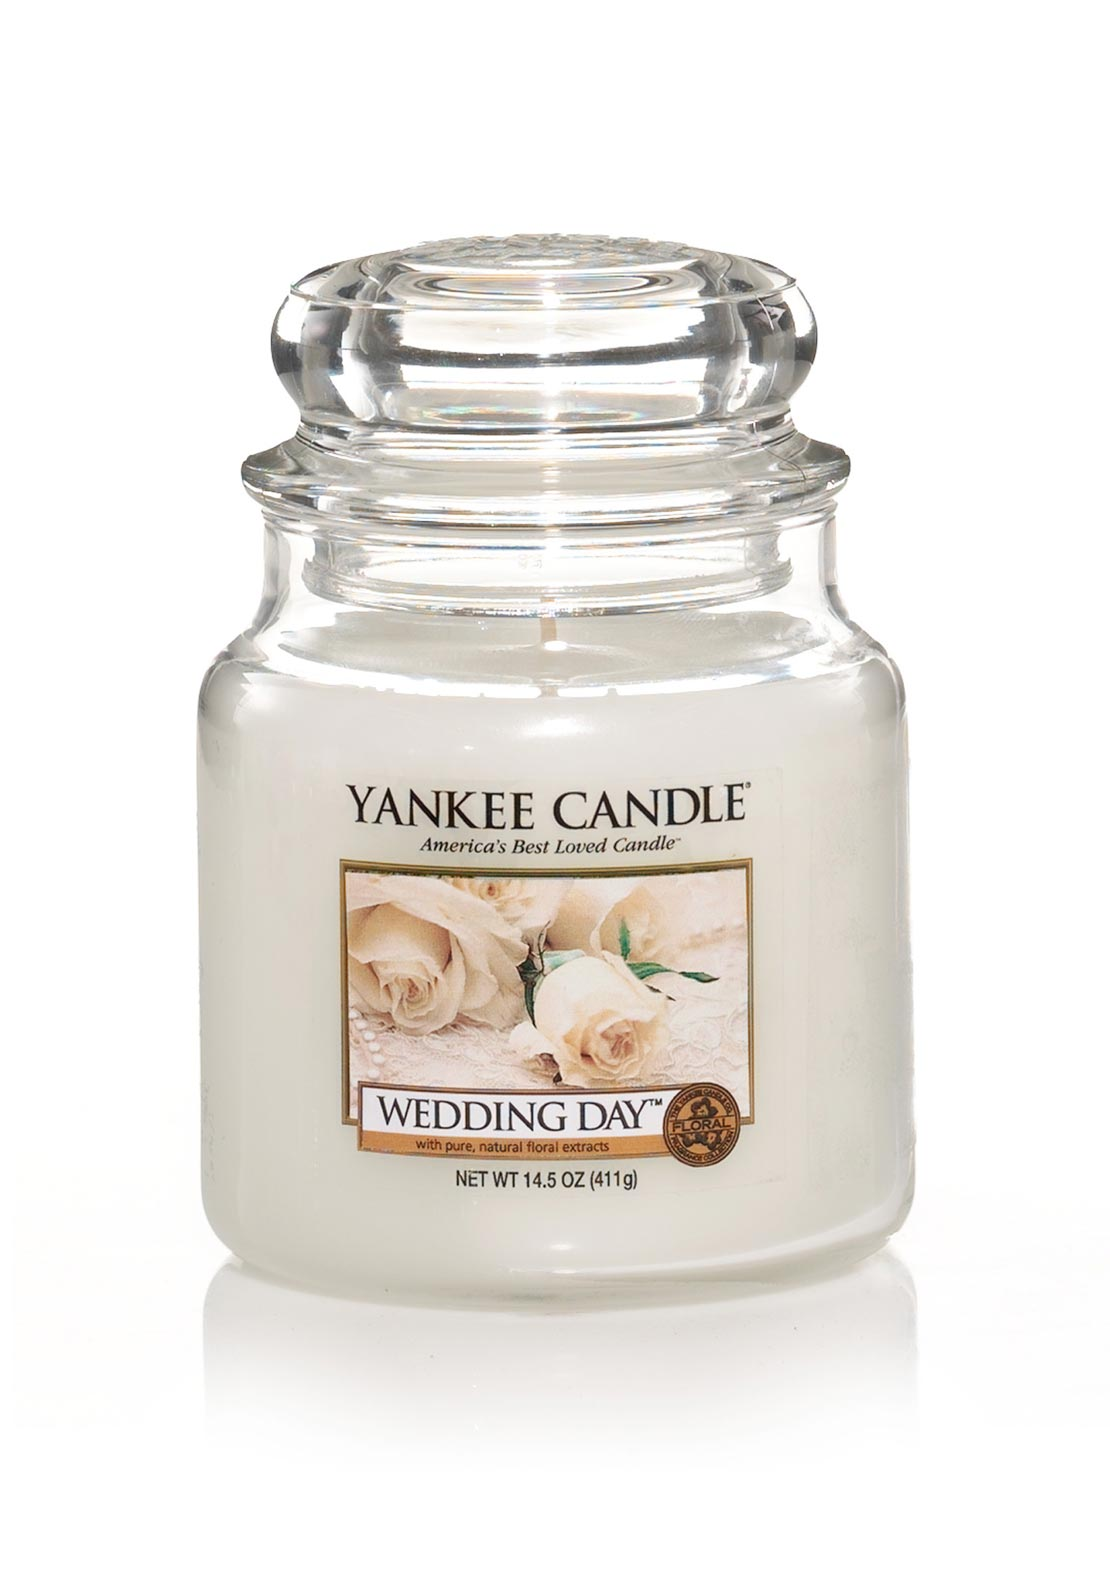 Yankee Candle Medium Classic Jar, Wedding Day